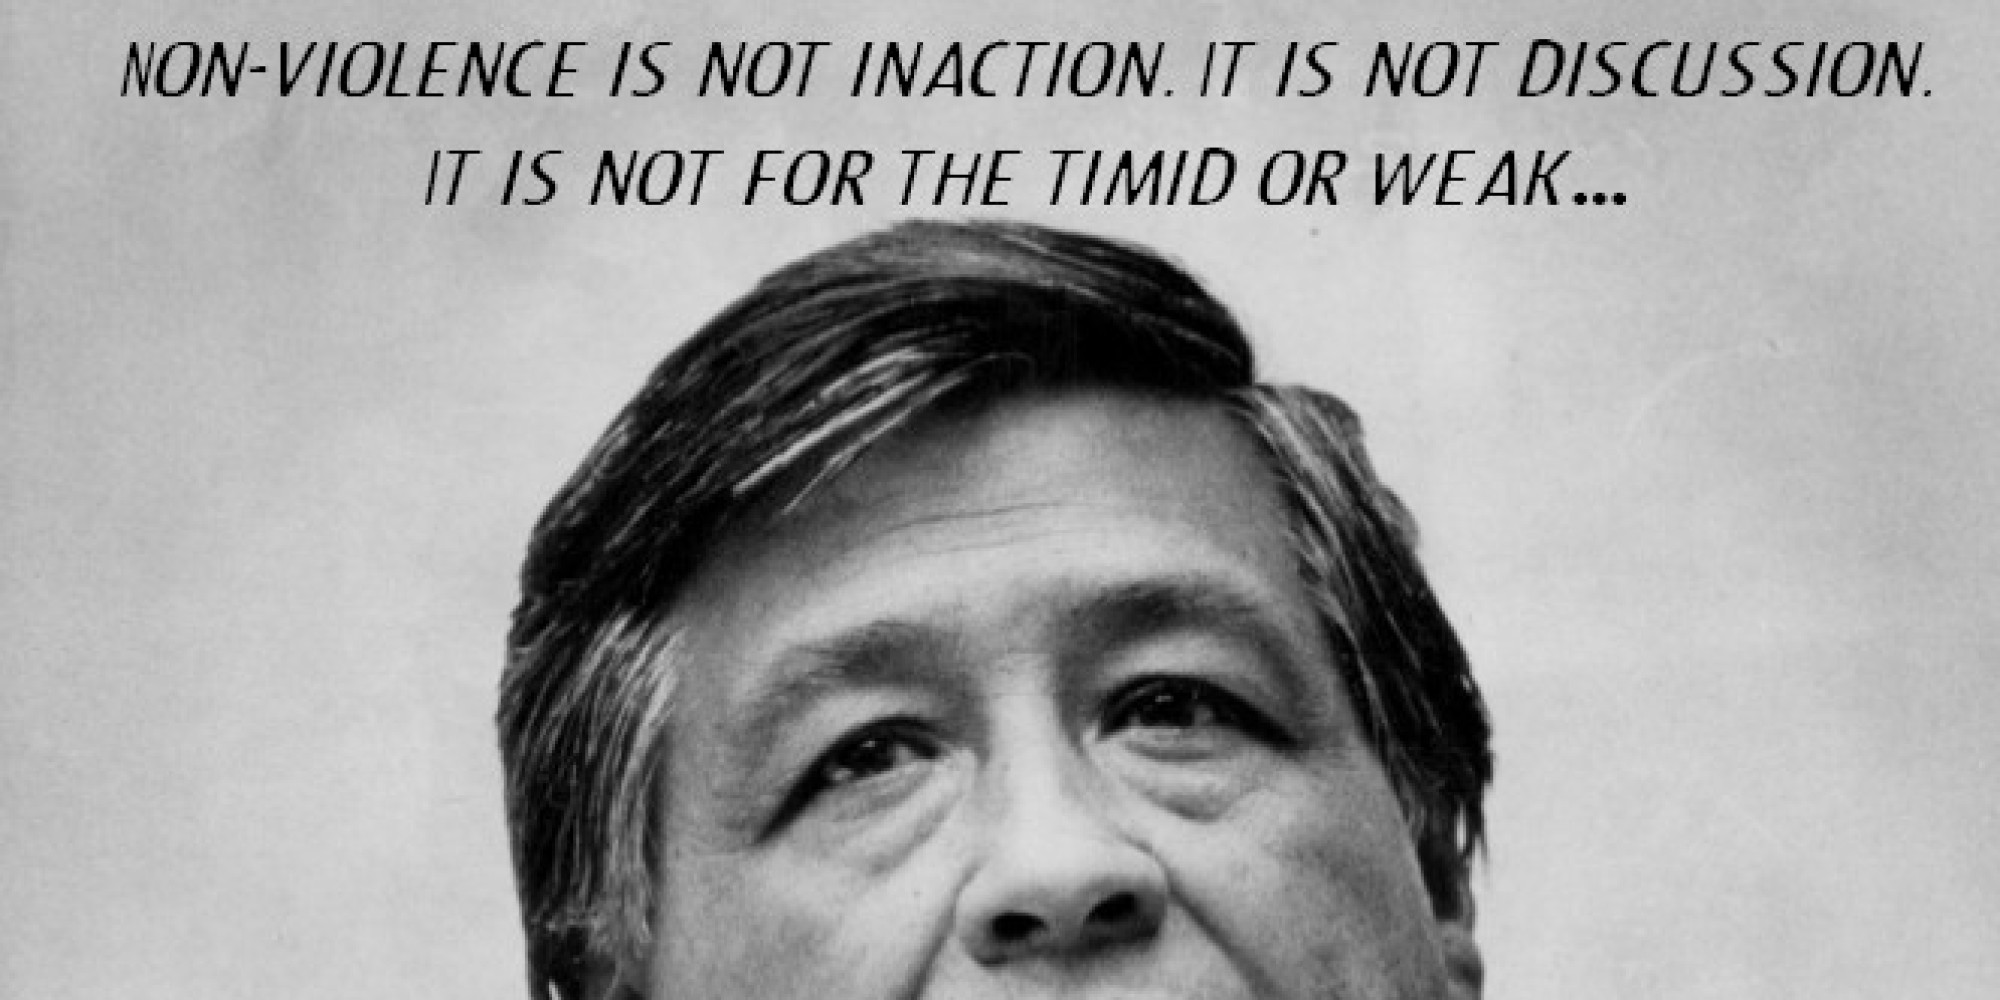 the colorful life of cesar chavez a famous labor leader Cesar chavez founded a labor union, launched a movement, and inspired a generation he rose from migrant worker to icon, becoming one of the great leaders of.